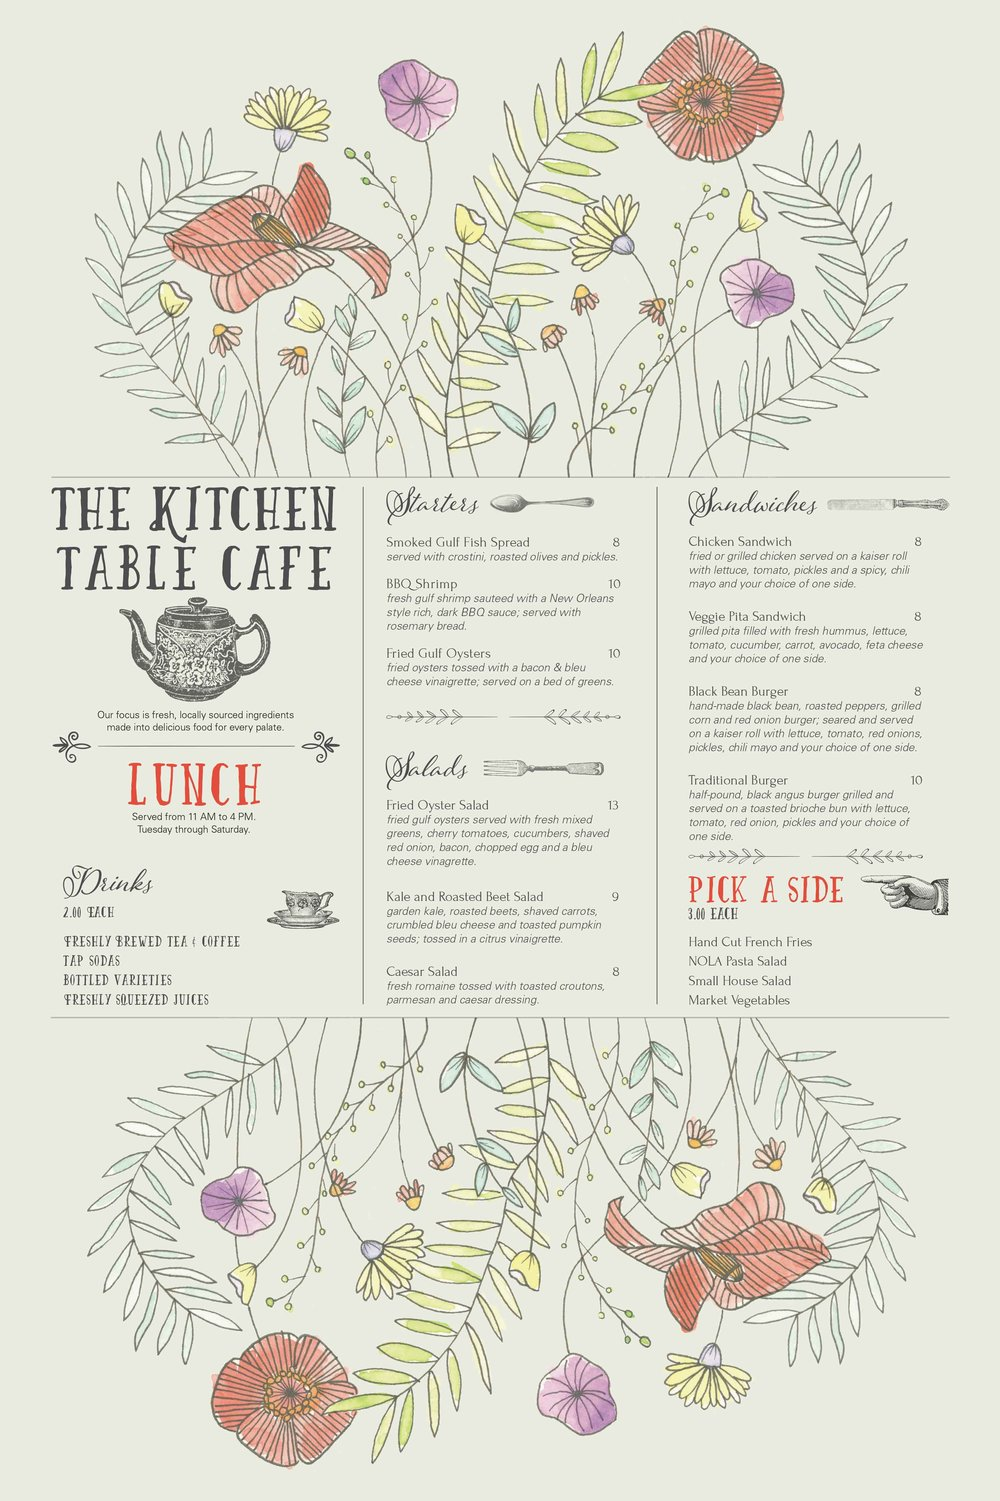 kitchentable_2jpg - Kitchen Table Cafe